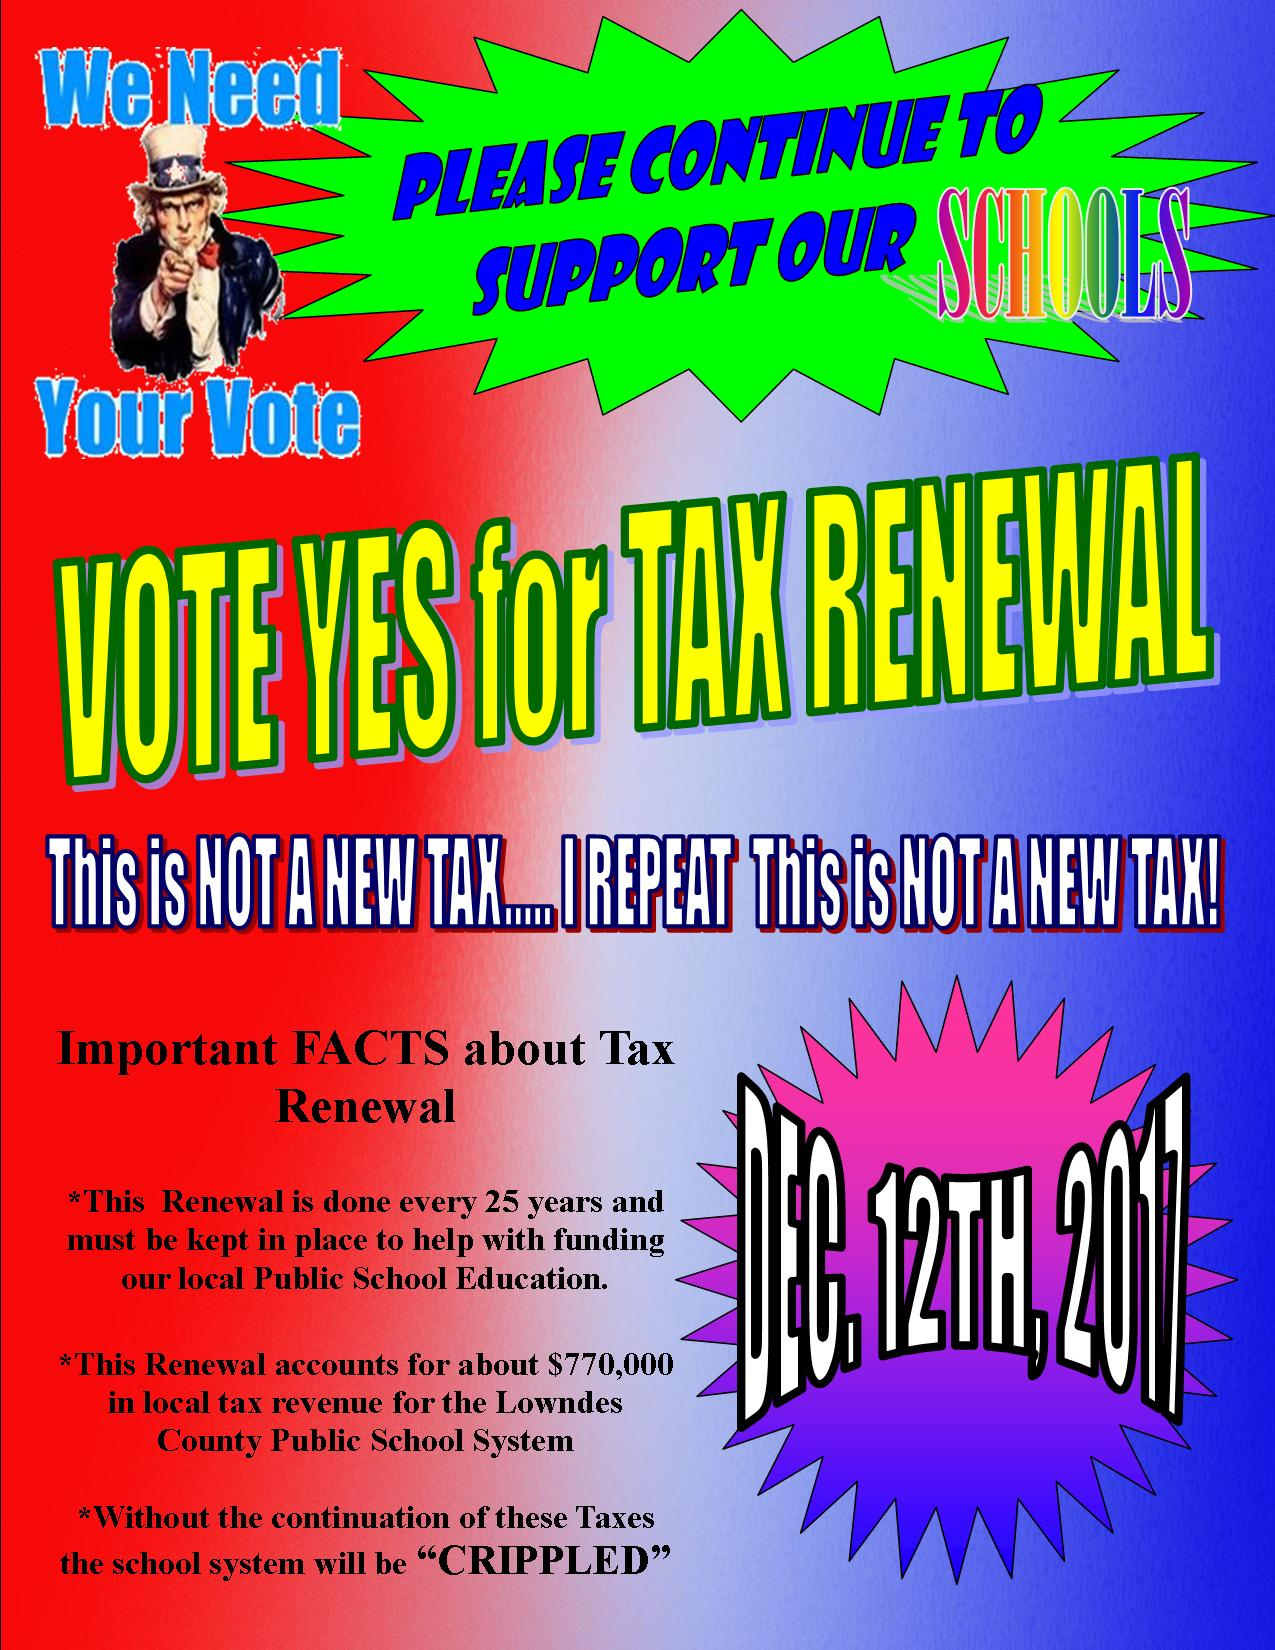 VOTE YES FOR TAX RENEWAL